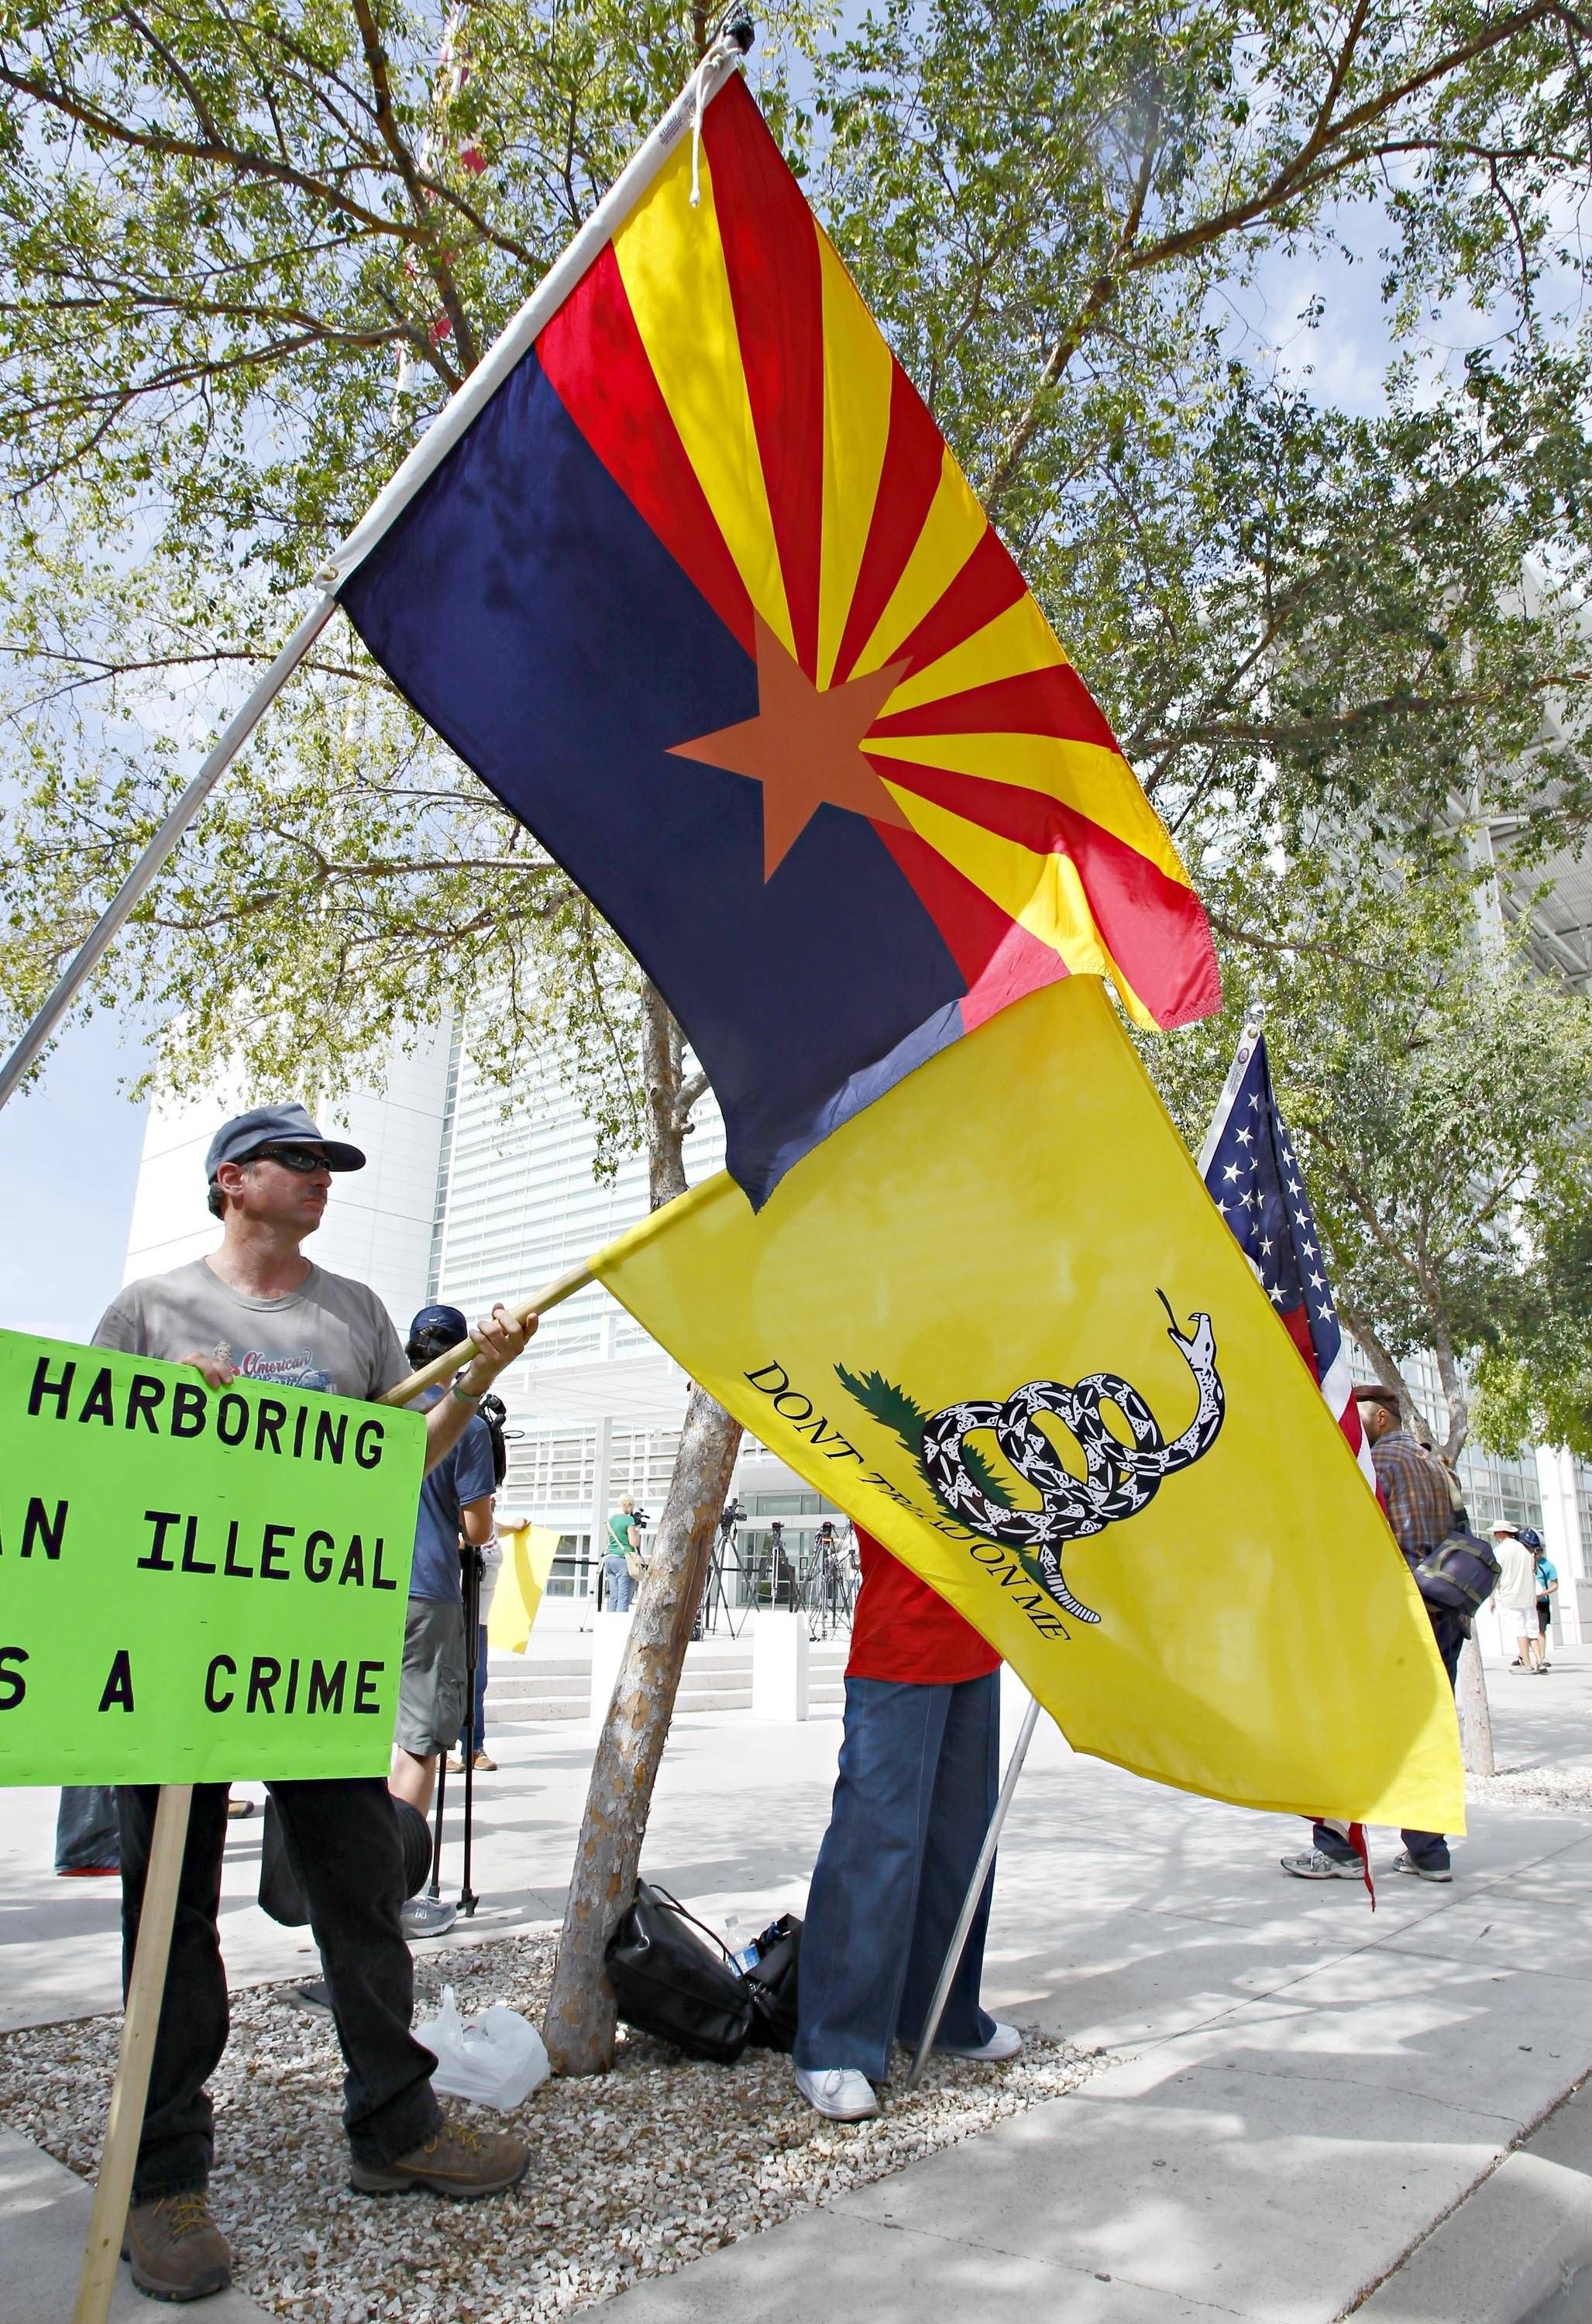 sb1070 the criminal law on illegal immigration The us supreme court struck down most of arizona's controversial sb 1070 anti-illegal immigration law on monday, invalidating most of its provisions the justices did allow police to check the.